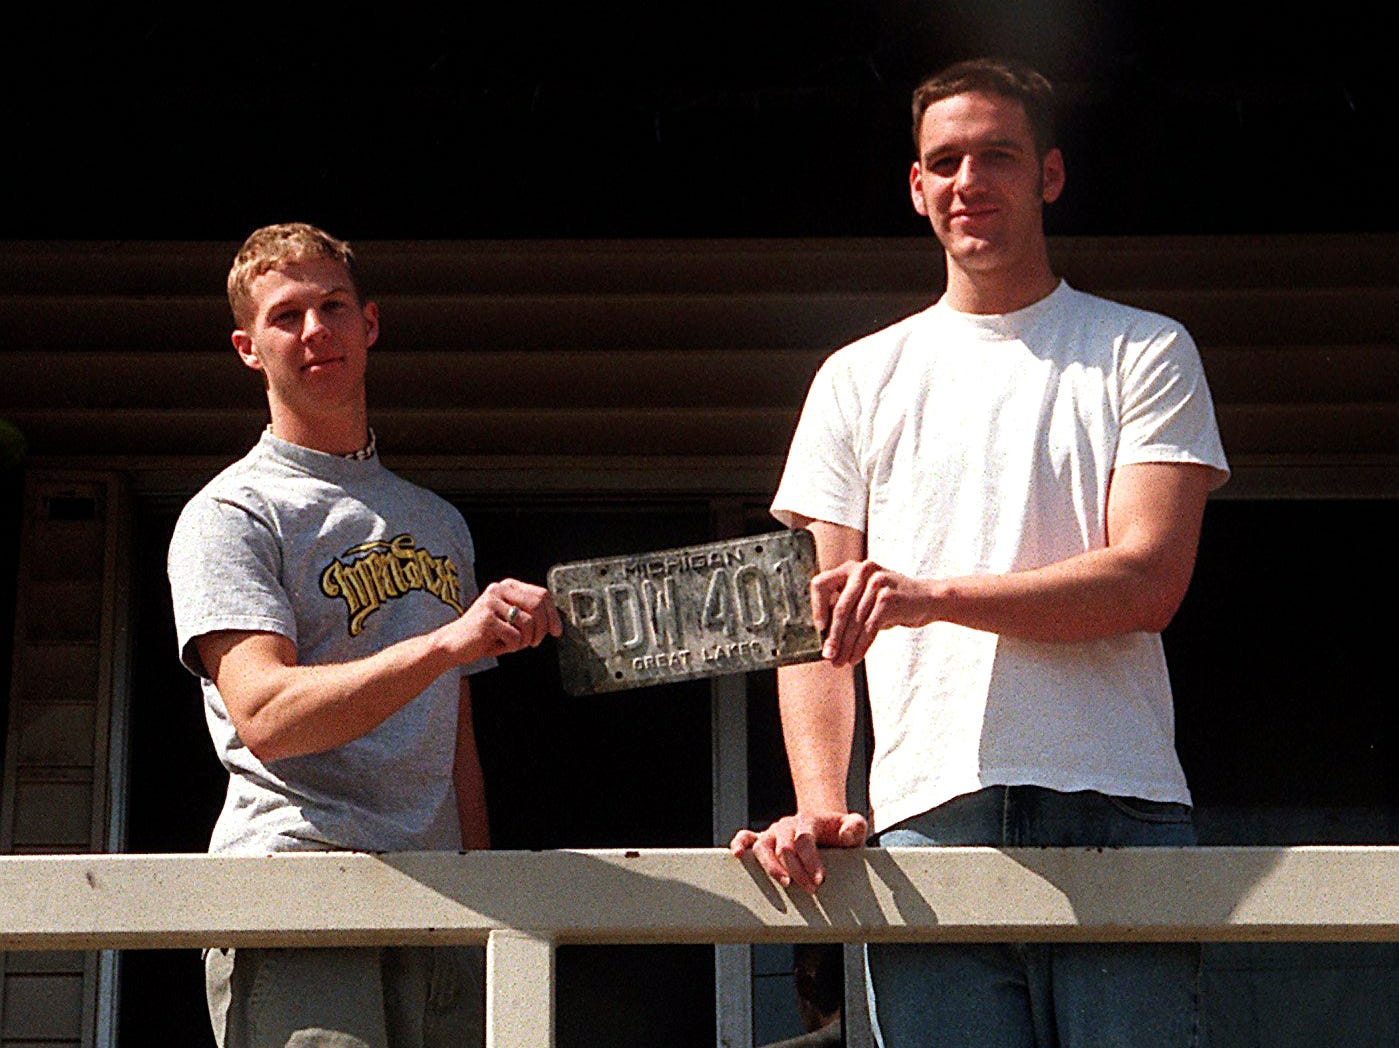 Cedar Village residents Jeremy Dunn, left, and Clint Cherney hold up a charred license plate on Sunday, March 28, 1999, in East Lansing. They recovered it from the site of one of the many bonfires around Cedar Village the night before.